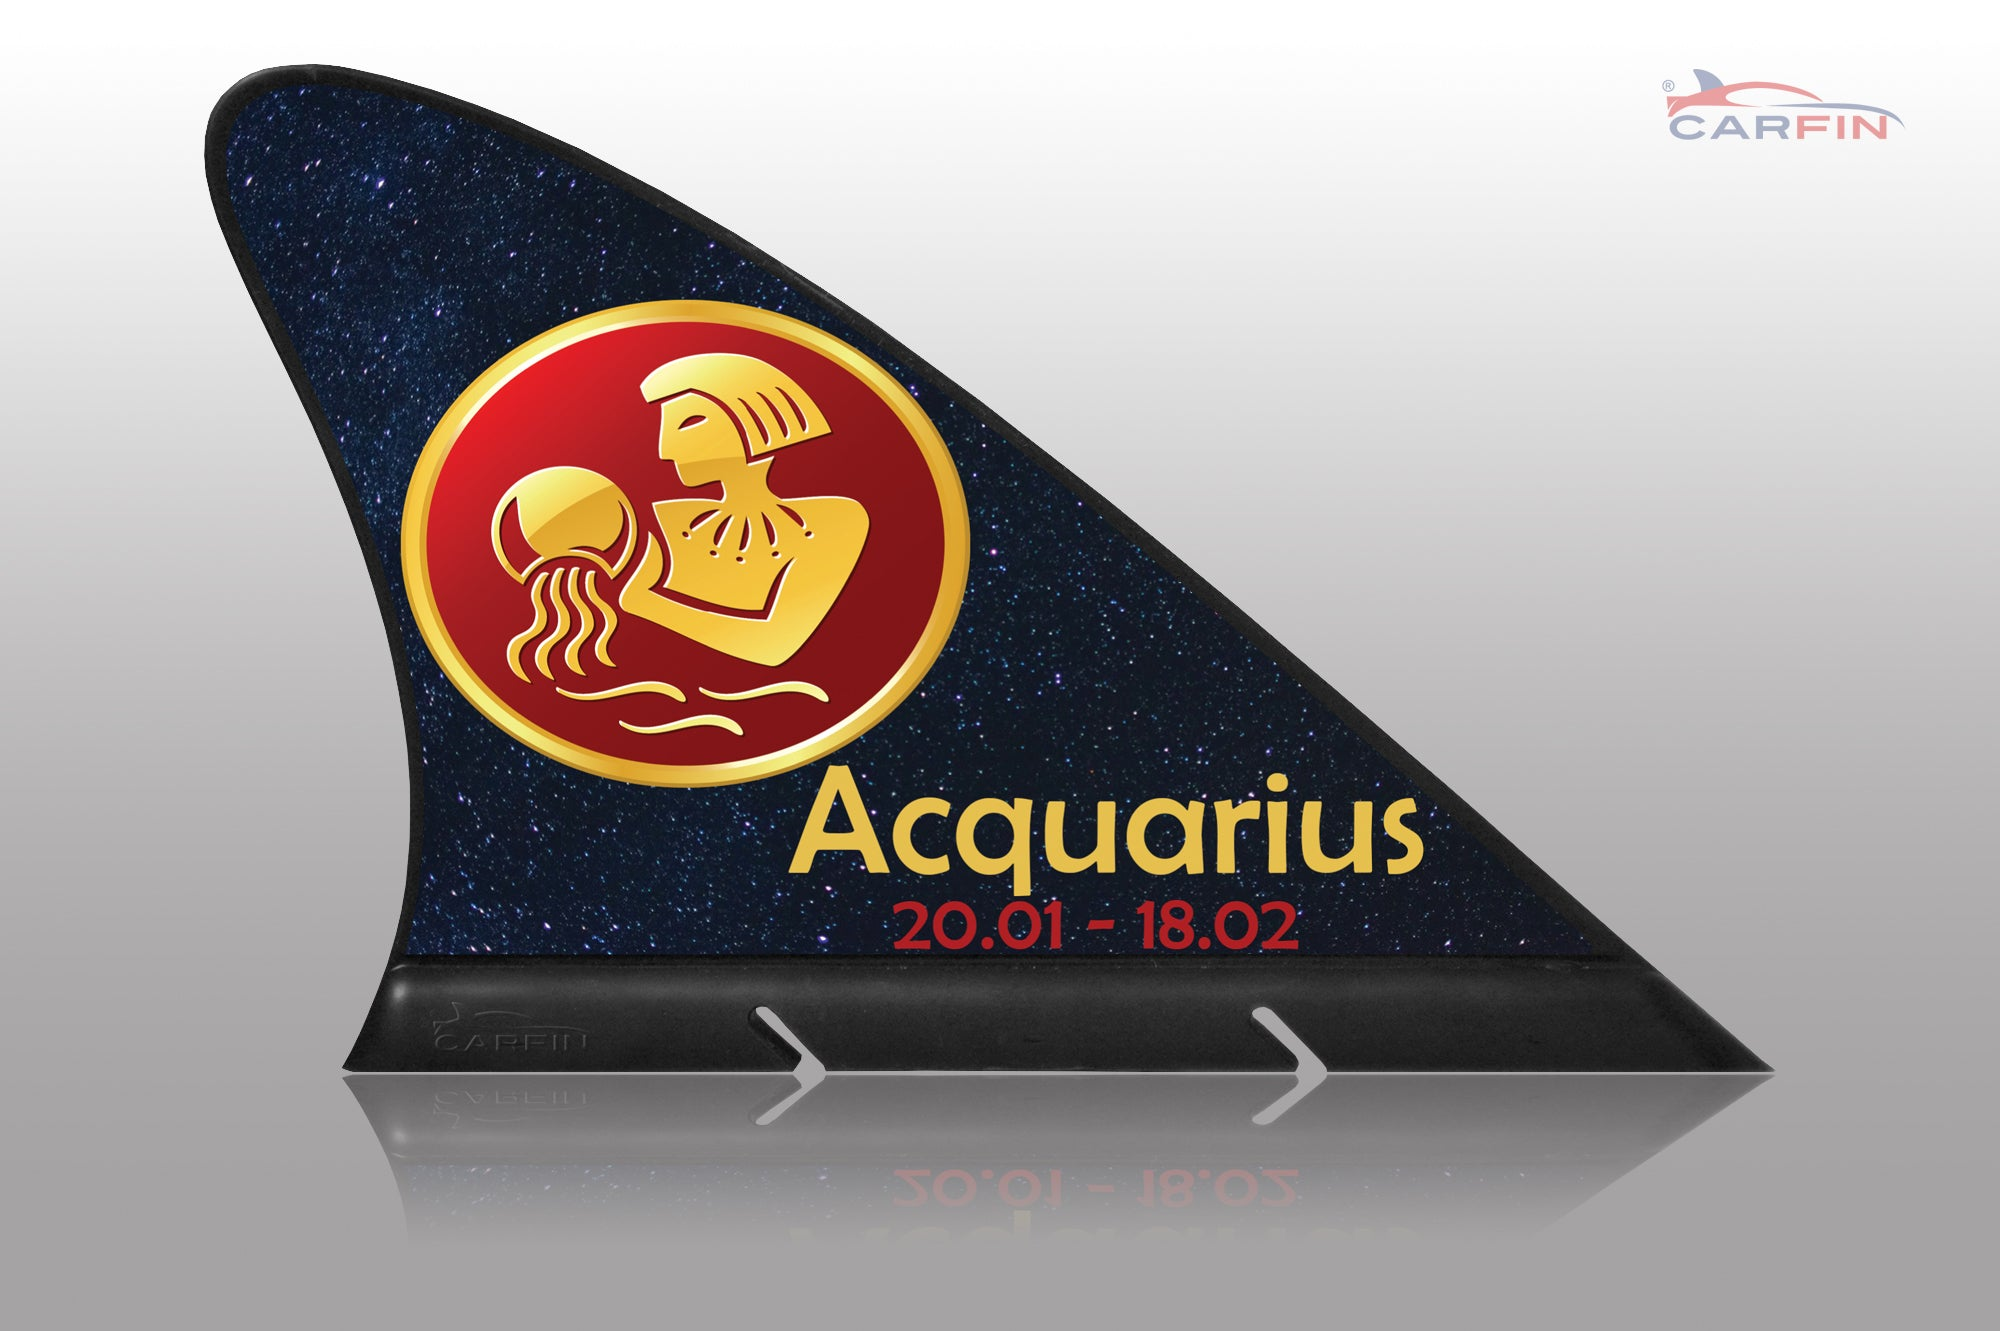 Aquarius Car Flag CARFIN , Magnetic Car signs. - Carfin